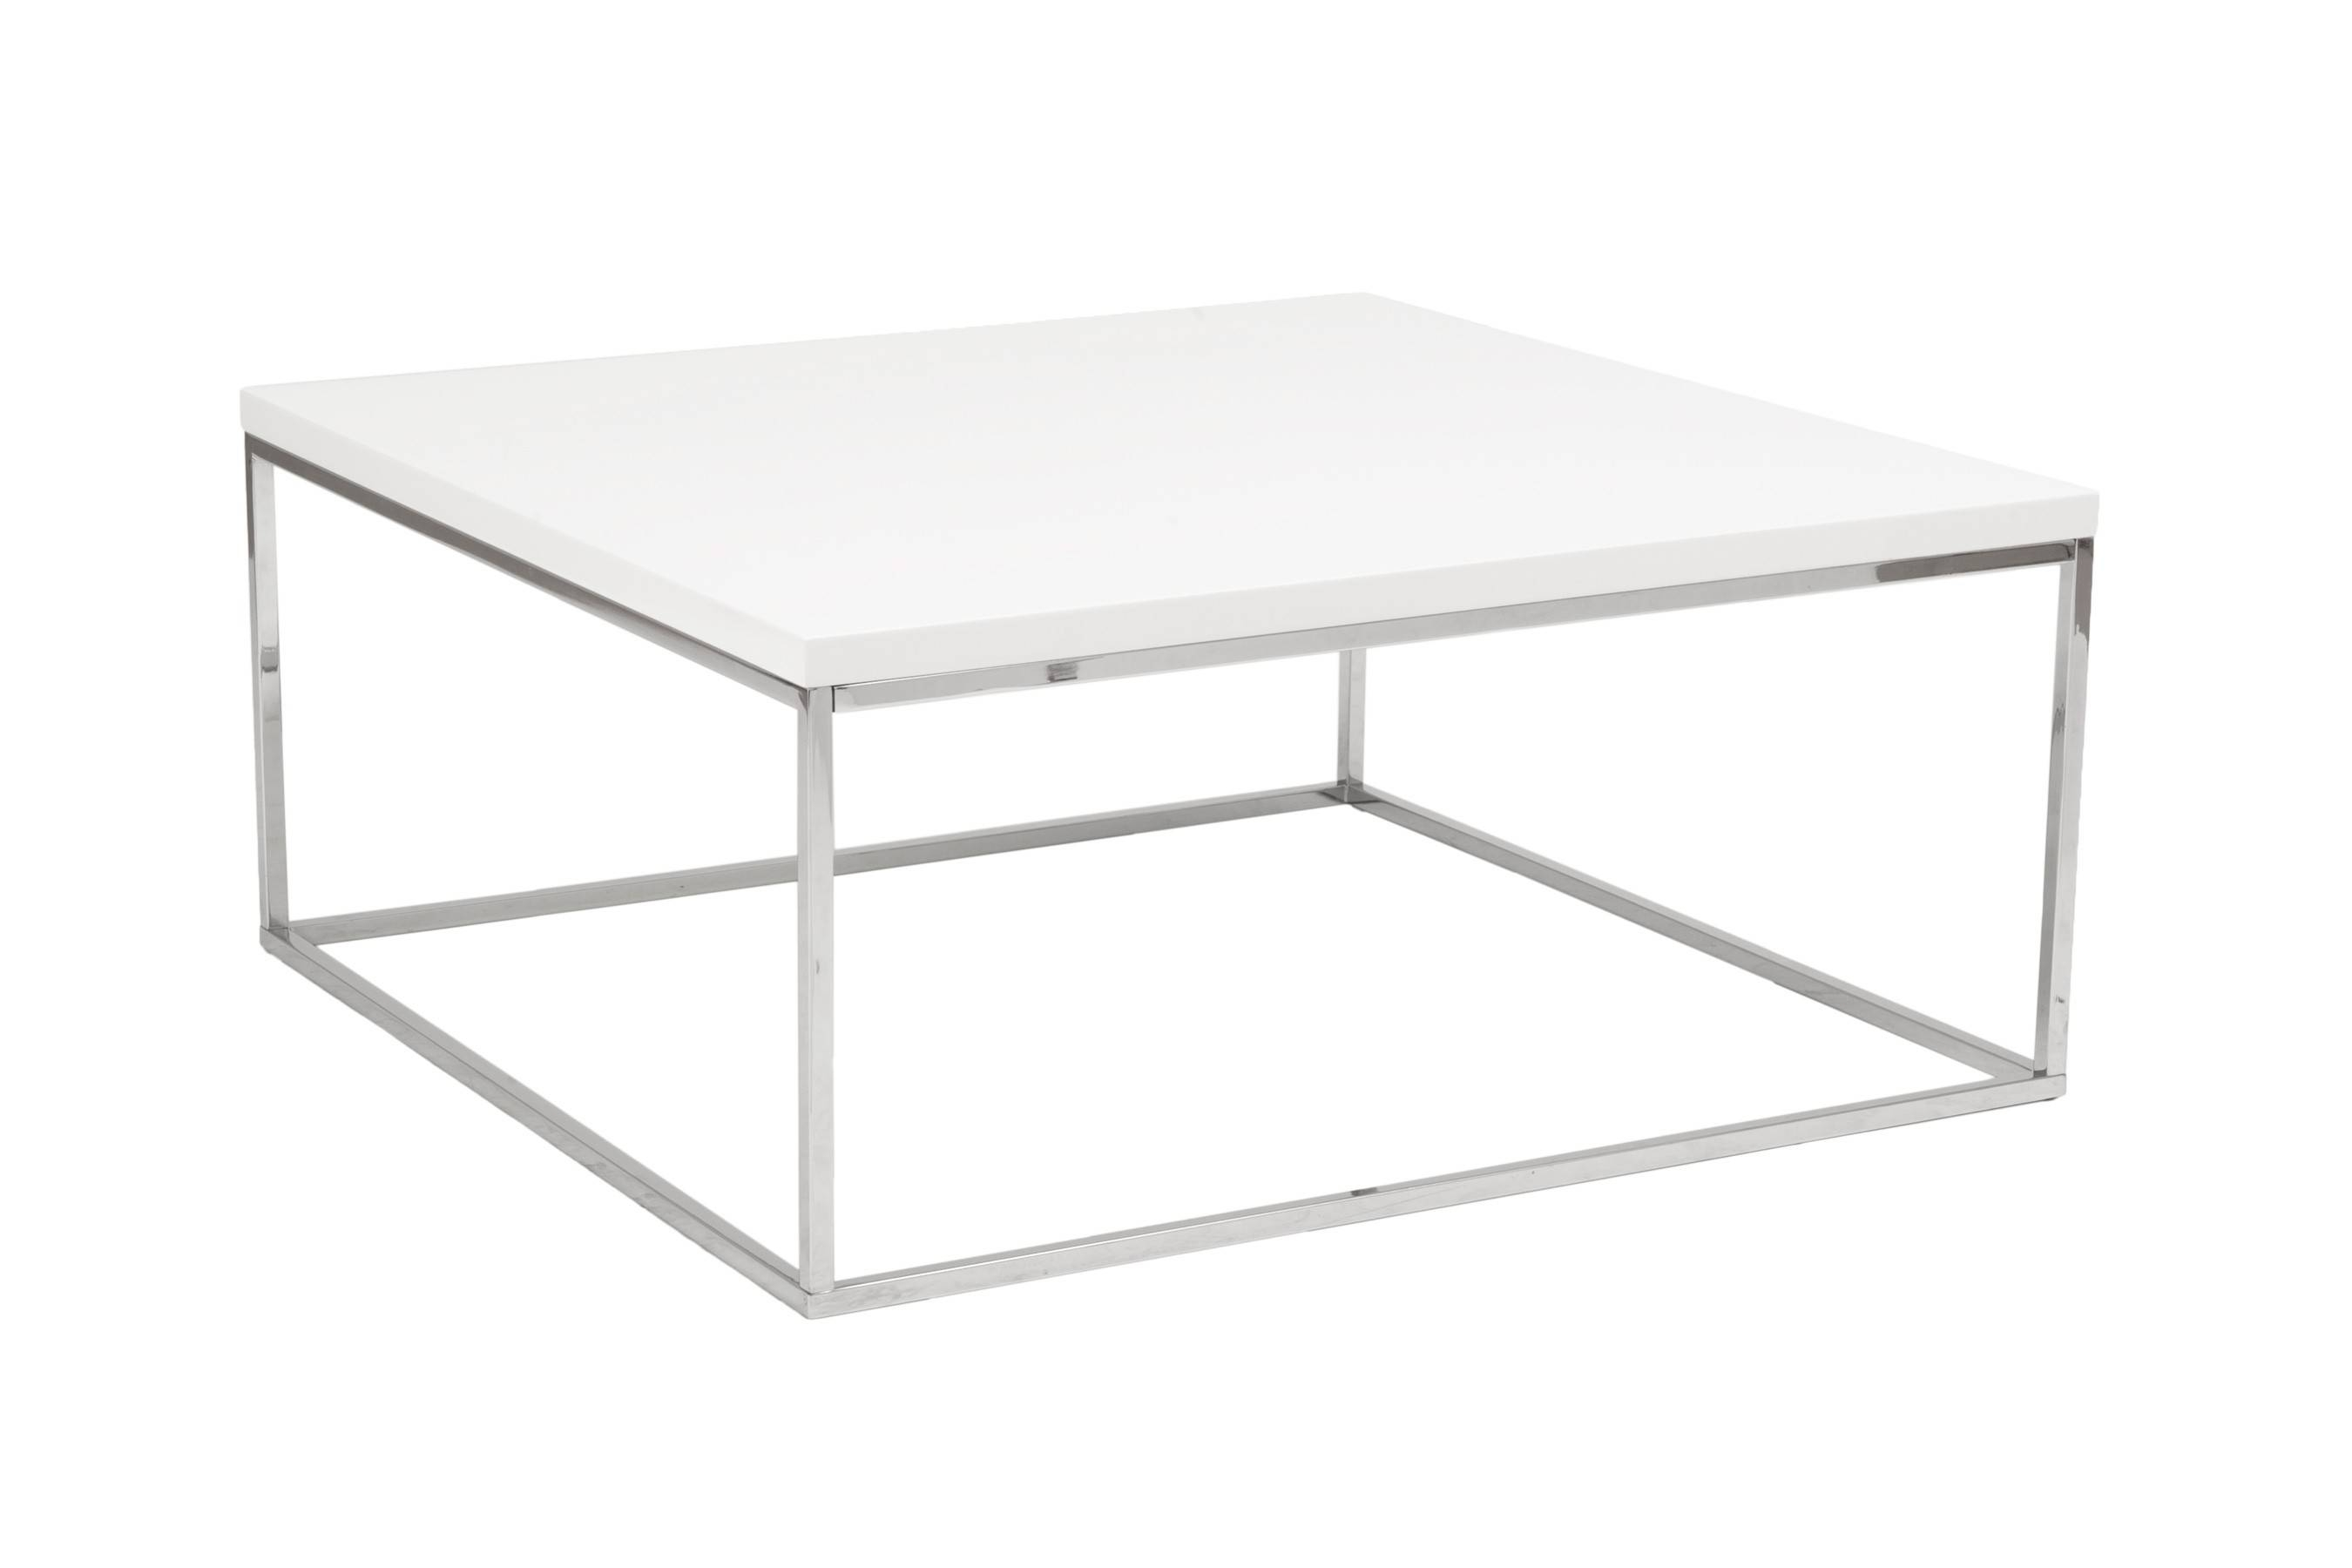 Coffee Table: Outstanding Minimalist Coffee Table Designs Steel regarding Square Stone Coffee Tables (Image 7 of 30)